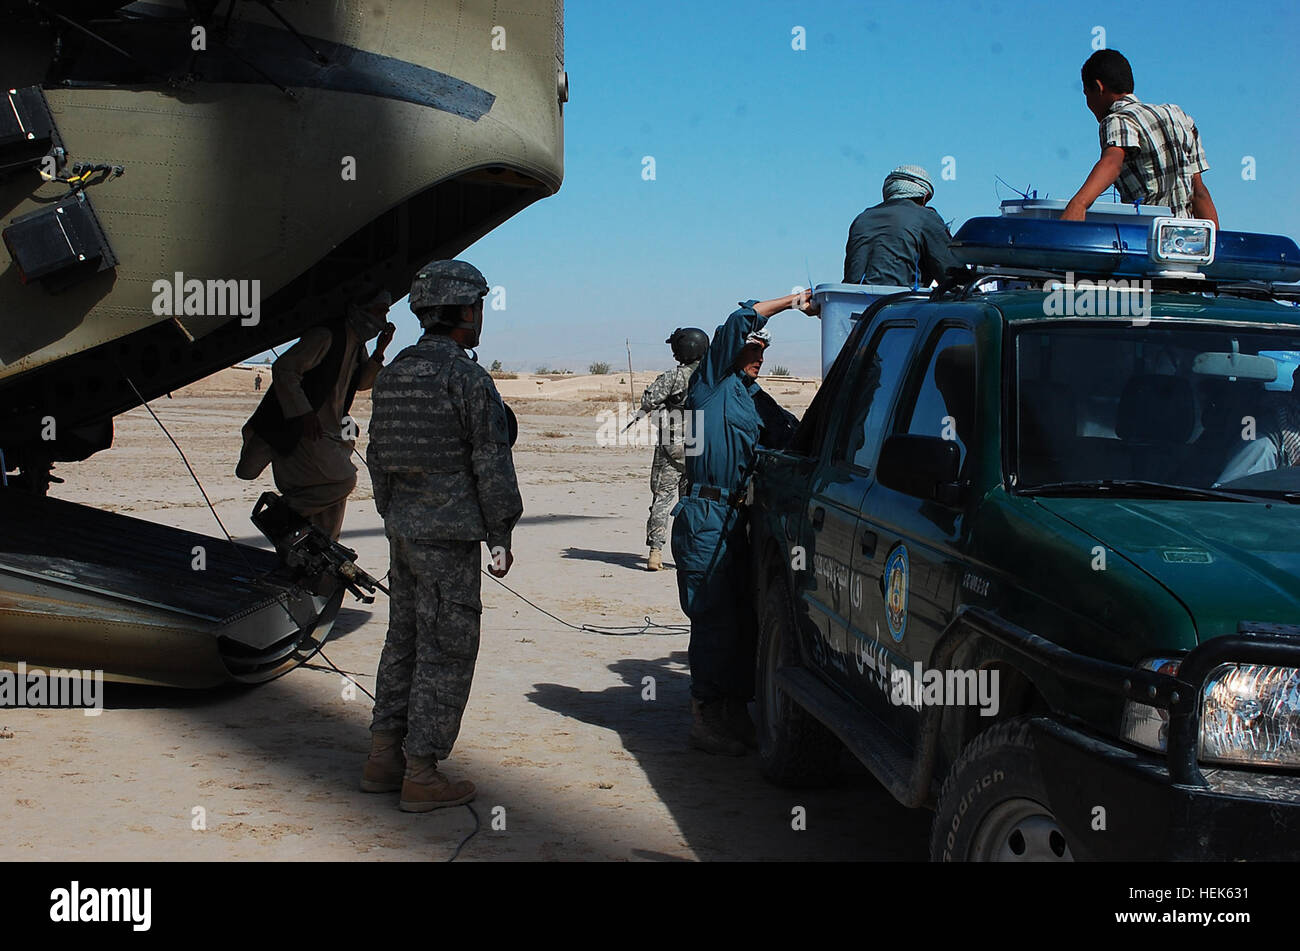 Members of the International Election Committee and Afghanistan National Police load sealed boxes containing ballots - Stock Image